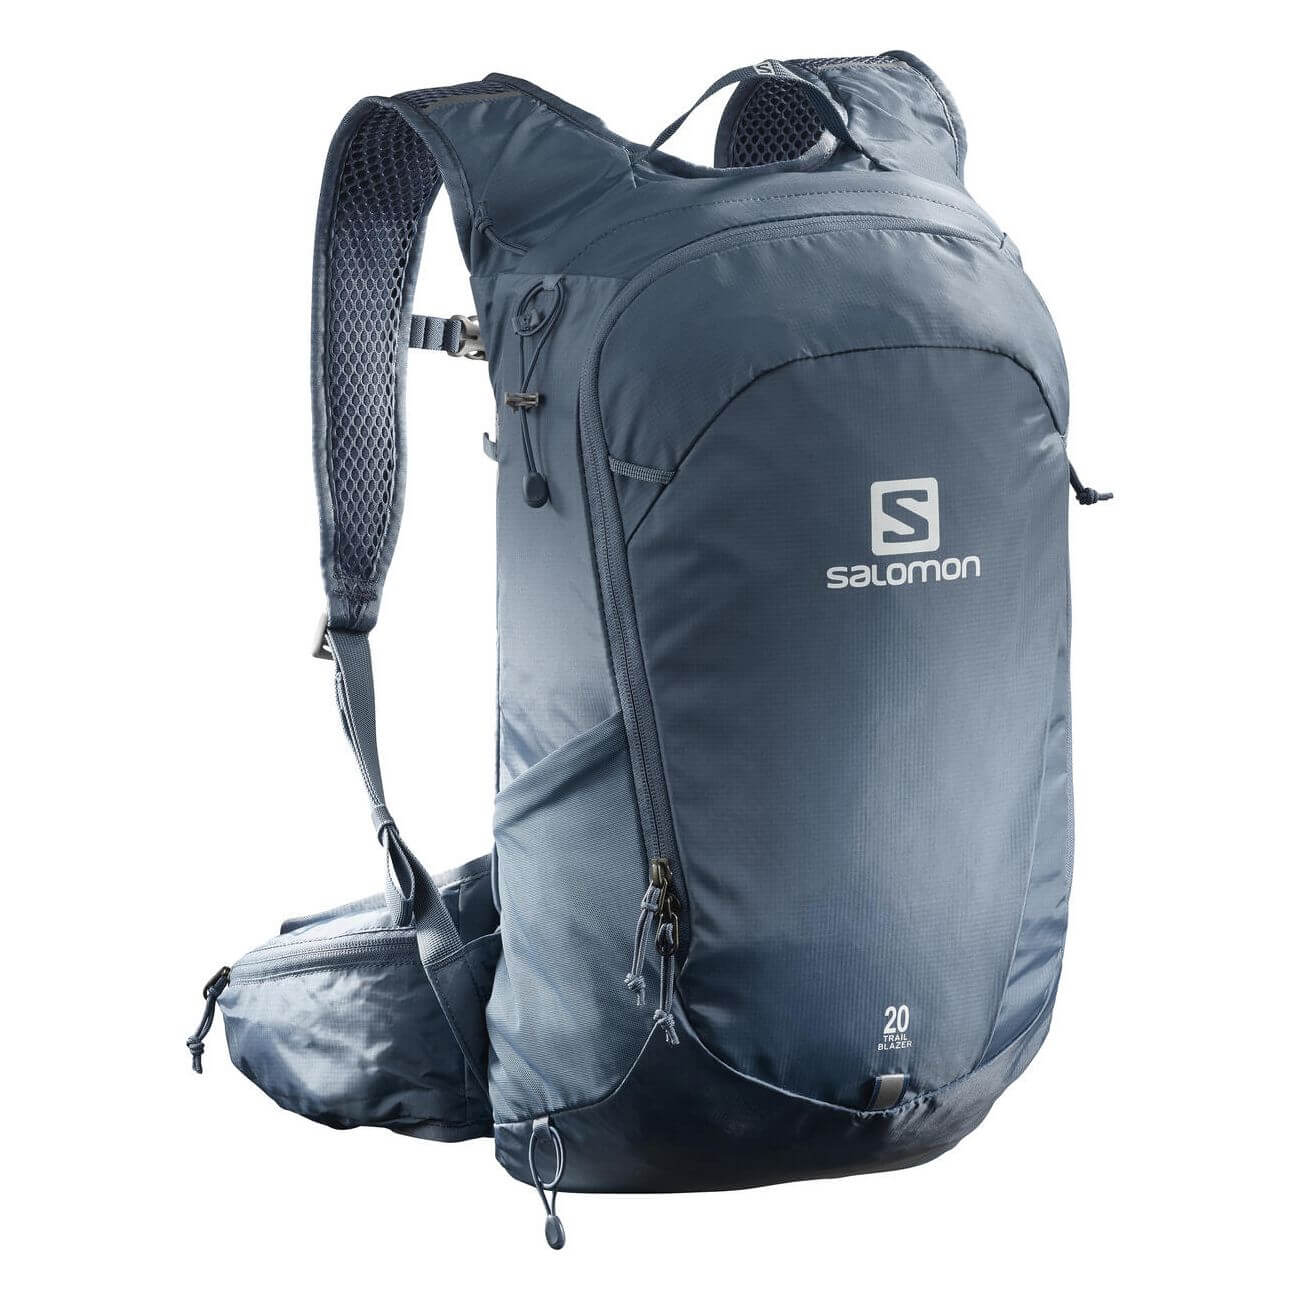 Salomon Trailblazer 20 copen blue